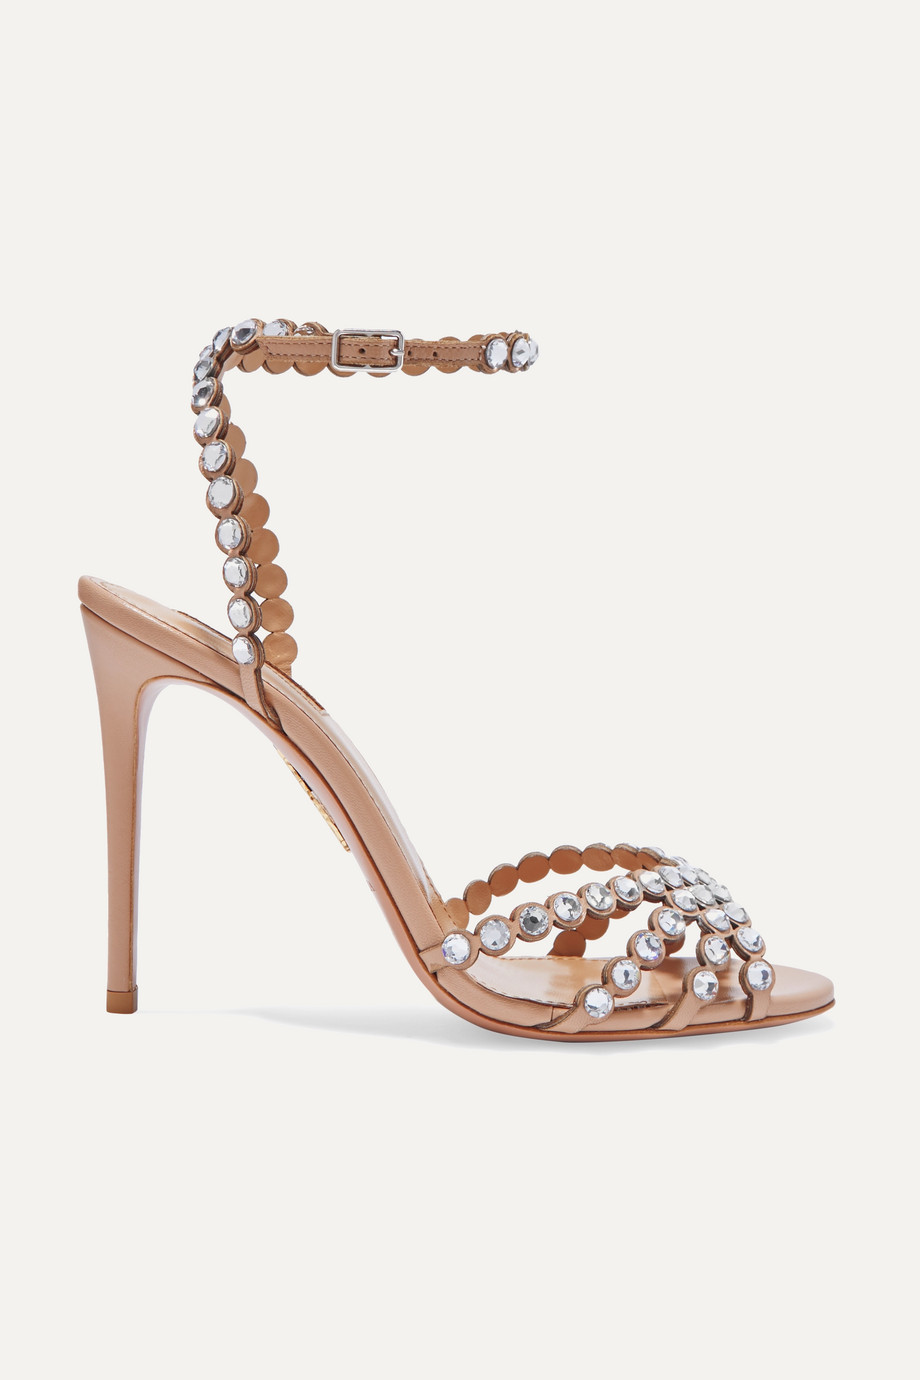 Aquazzura Tequila 105 crystal-embellished leather sandals